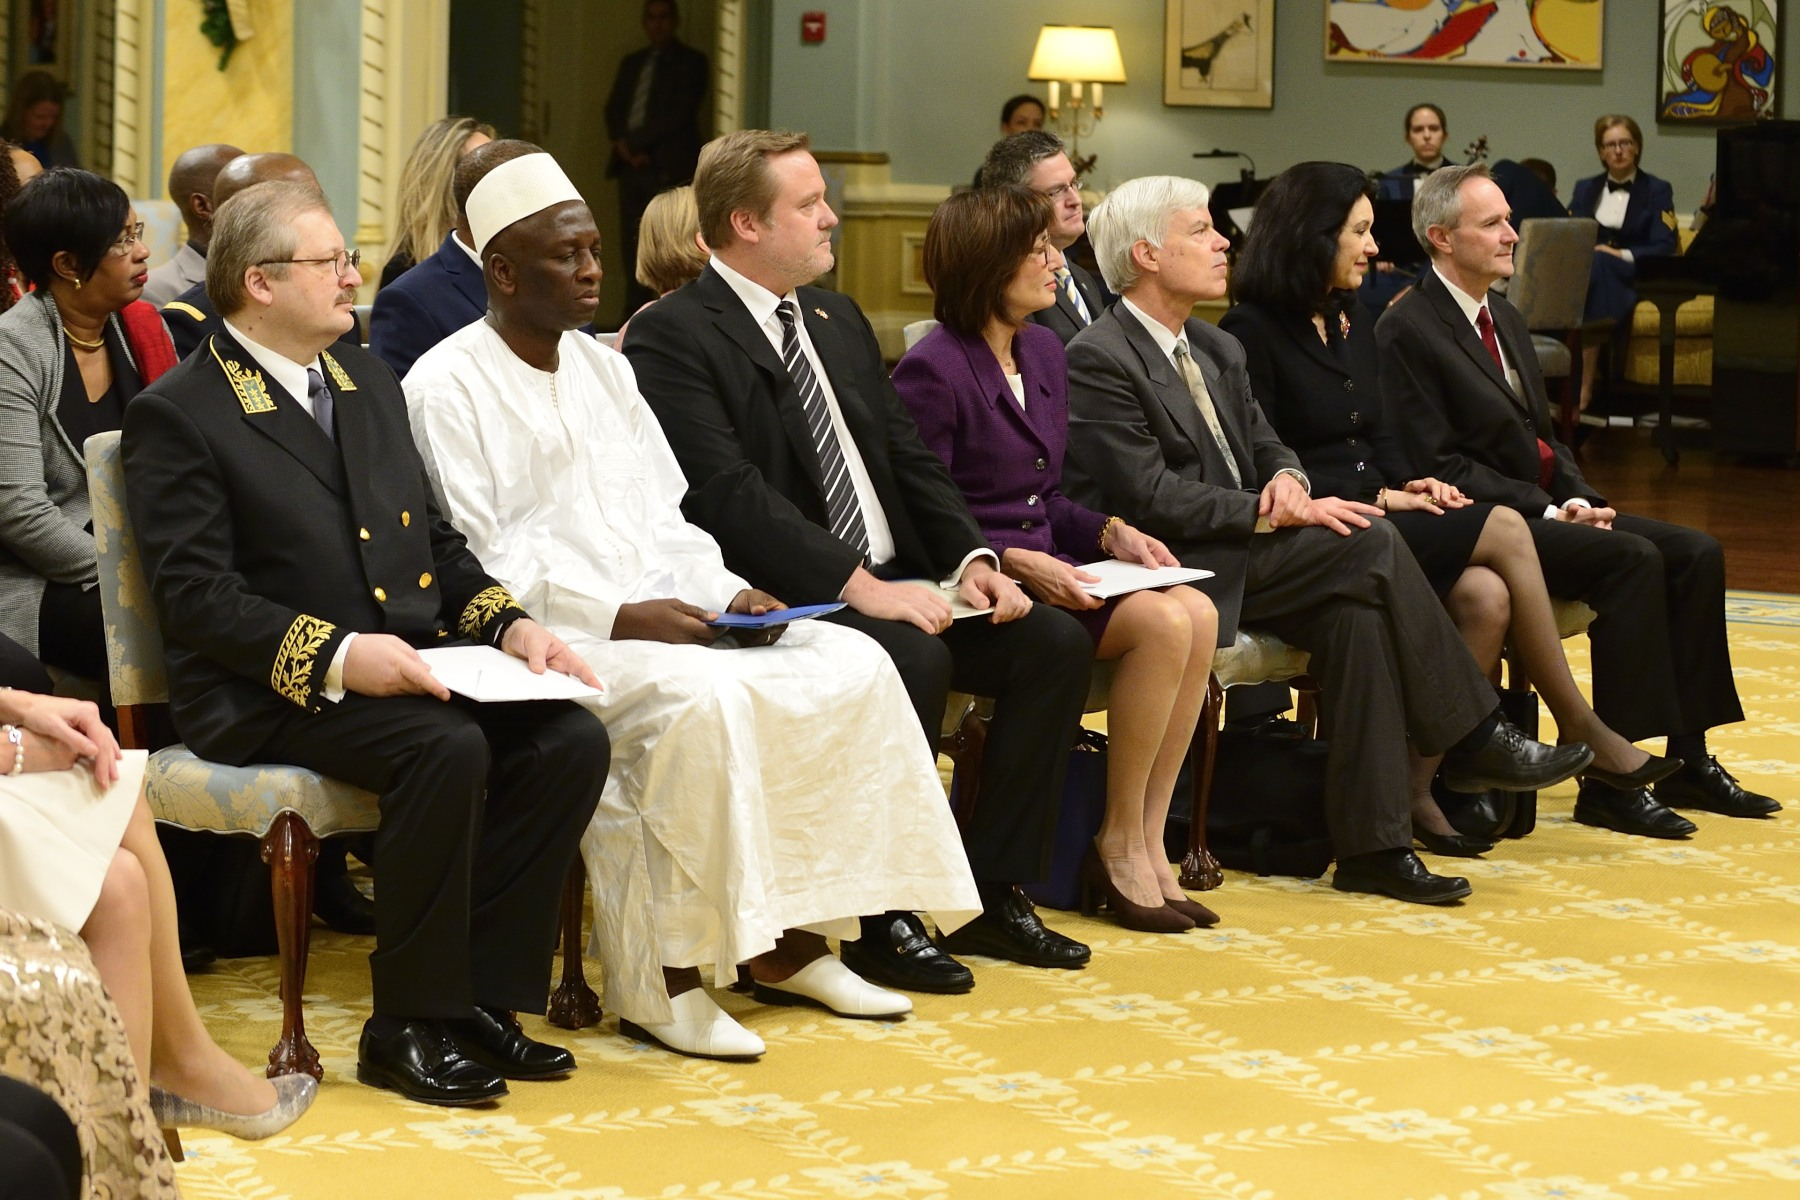 The Governor General received the letters of credence of four new heads of mission during a ceremony held at Rideau Hall.